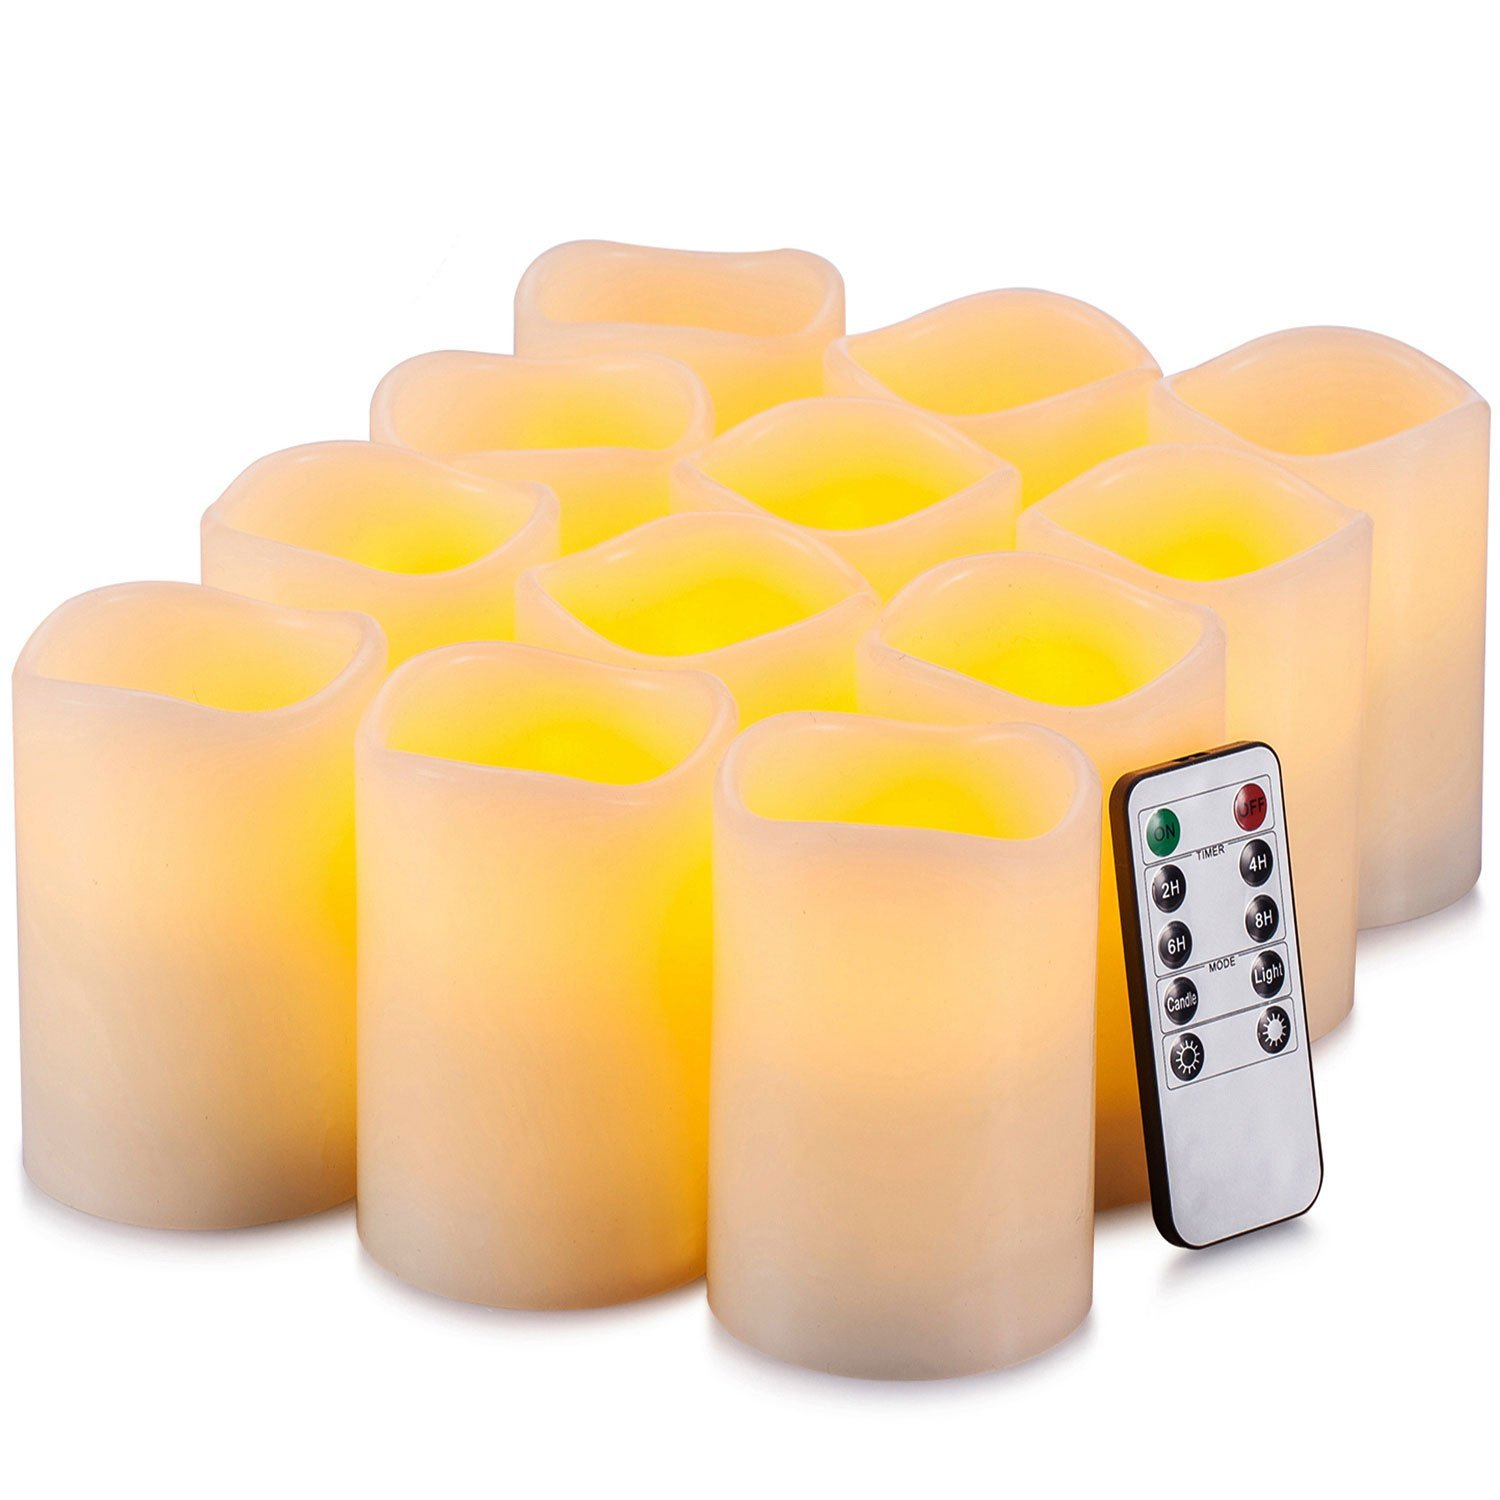 Enpornk Flameless Candles Battery Operated LED Pillar Real Wax Flickering Electric Unscented Candles with Remote Control Cycling 24 Hours Timer, 3''x4'' Set of 12